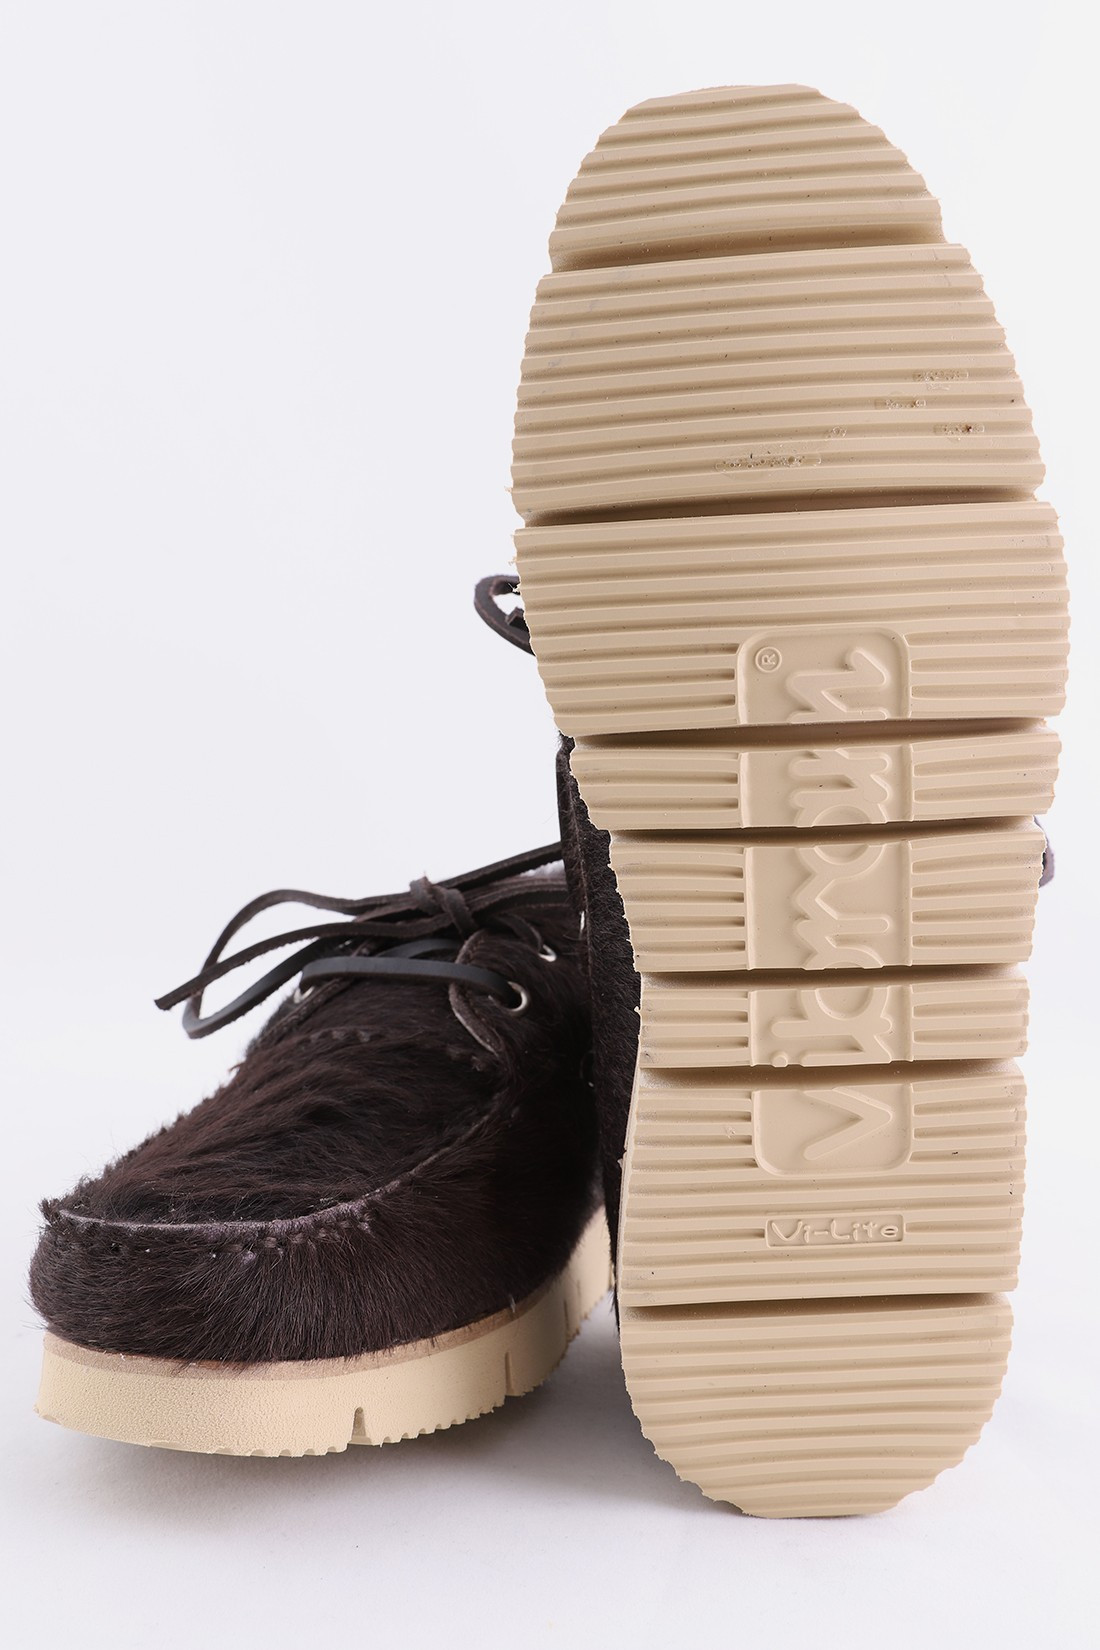 YMC FOR WOMAN / Boat shoes Brown